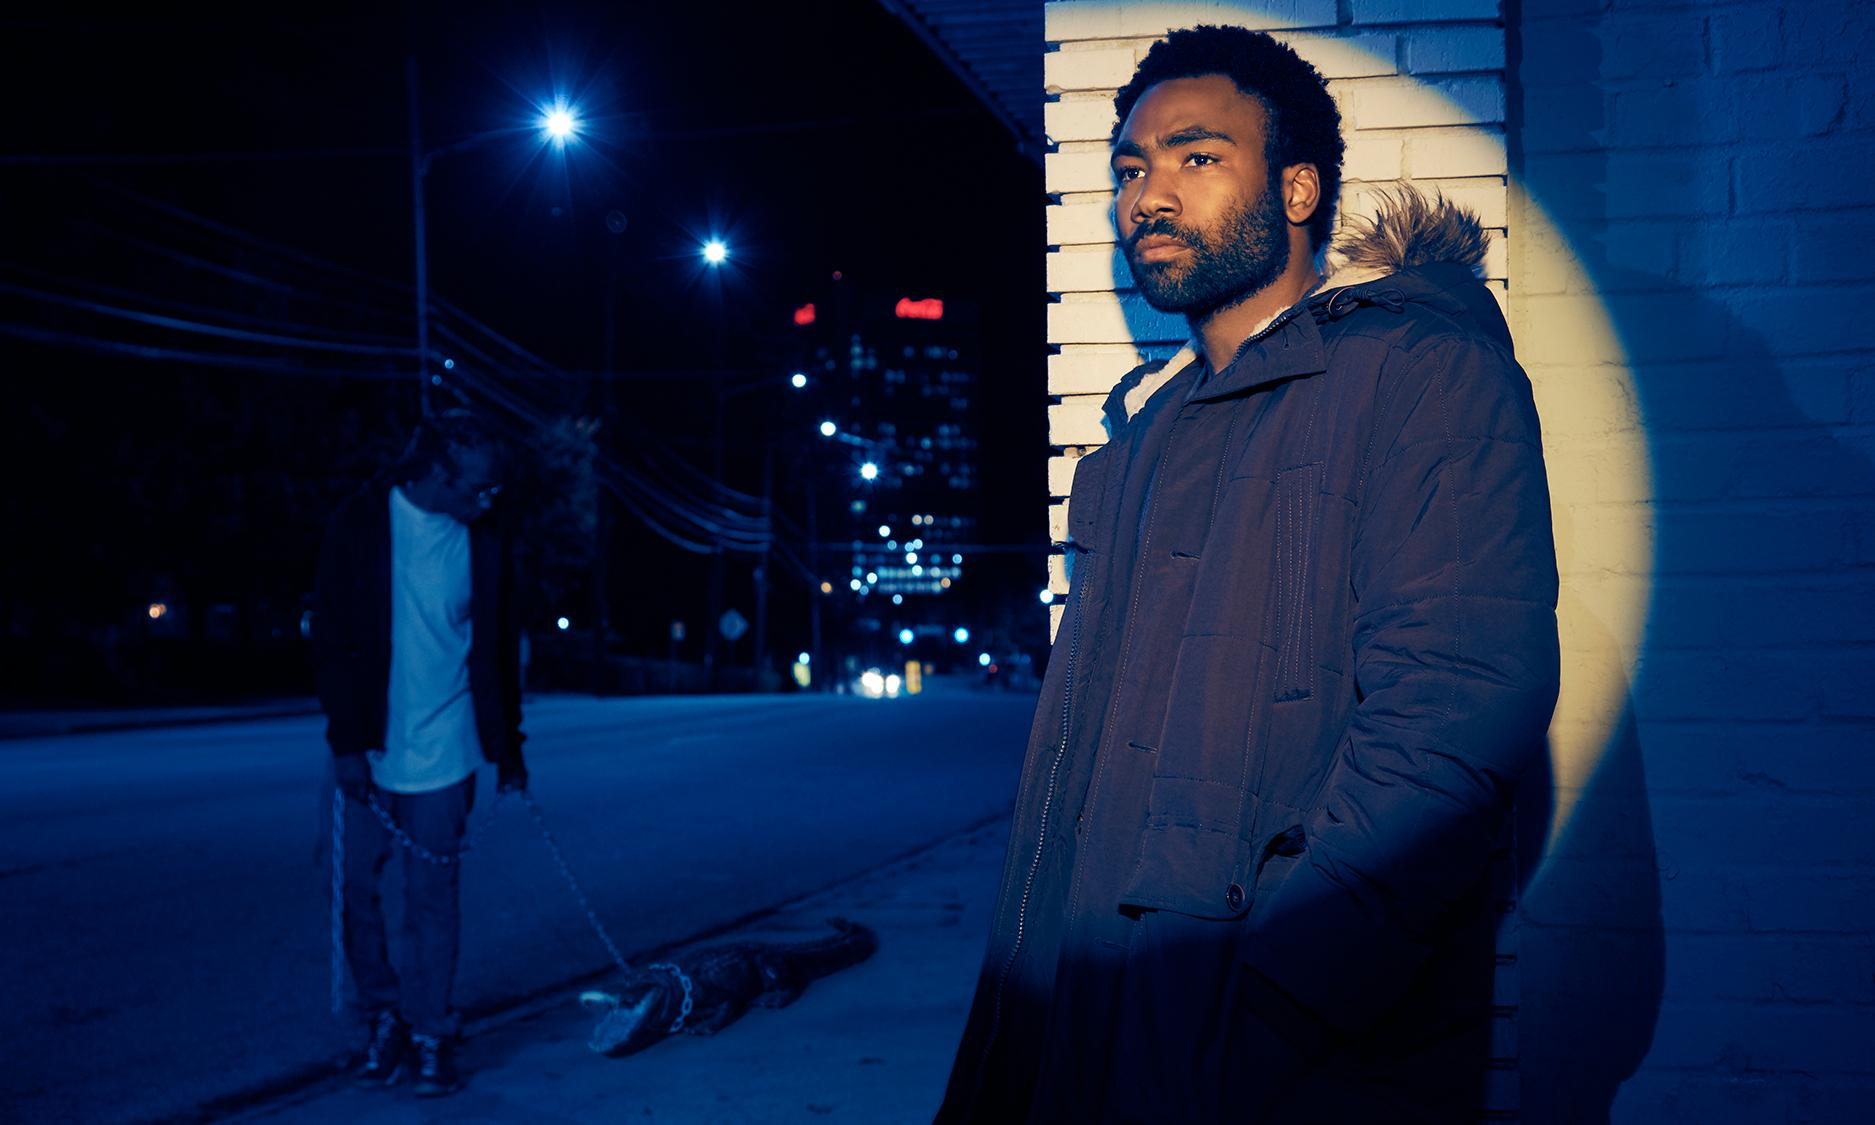 Donald Glover on the return of Atlanta: 'I'm not making a TV show, I am making an experience'